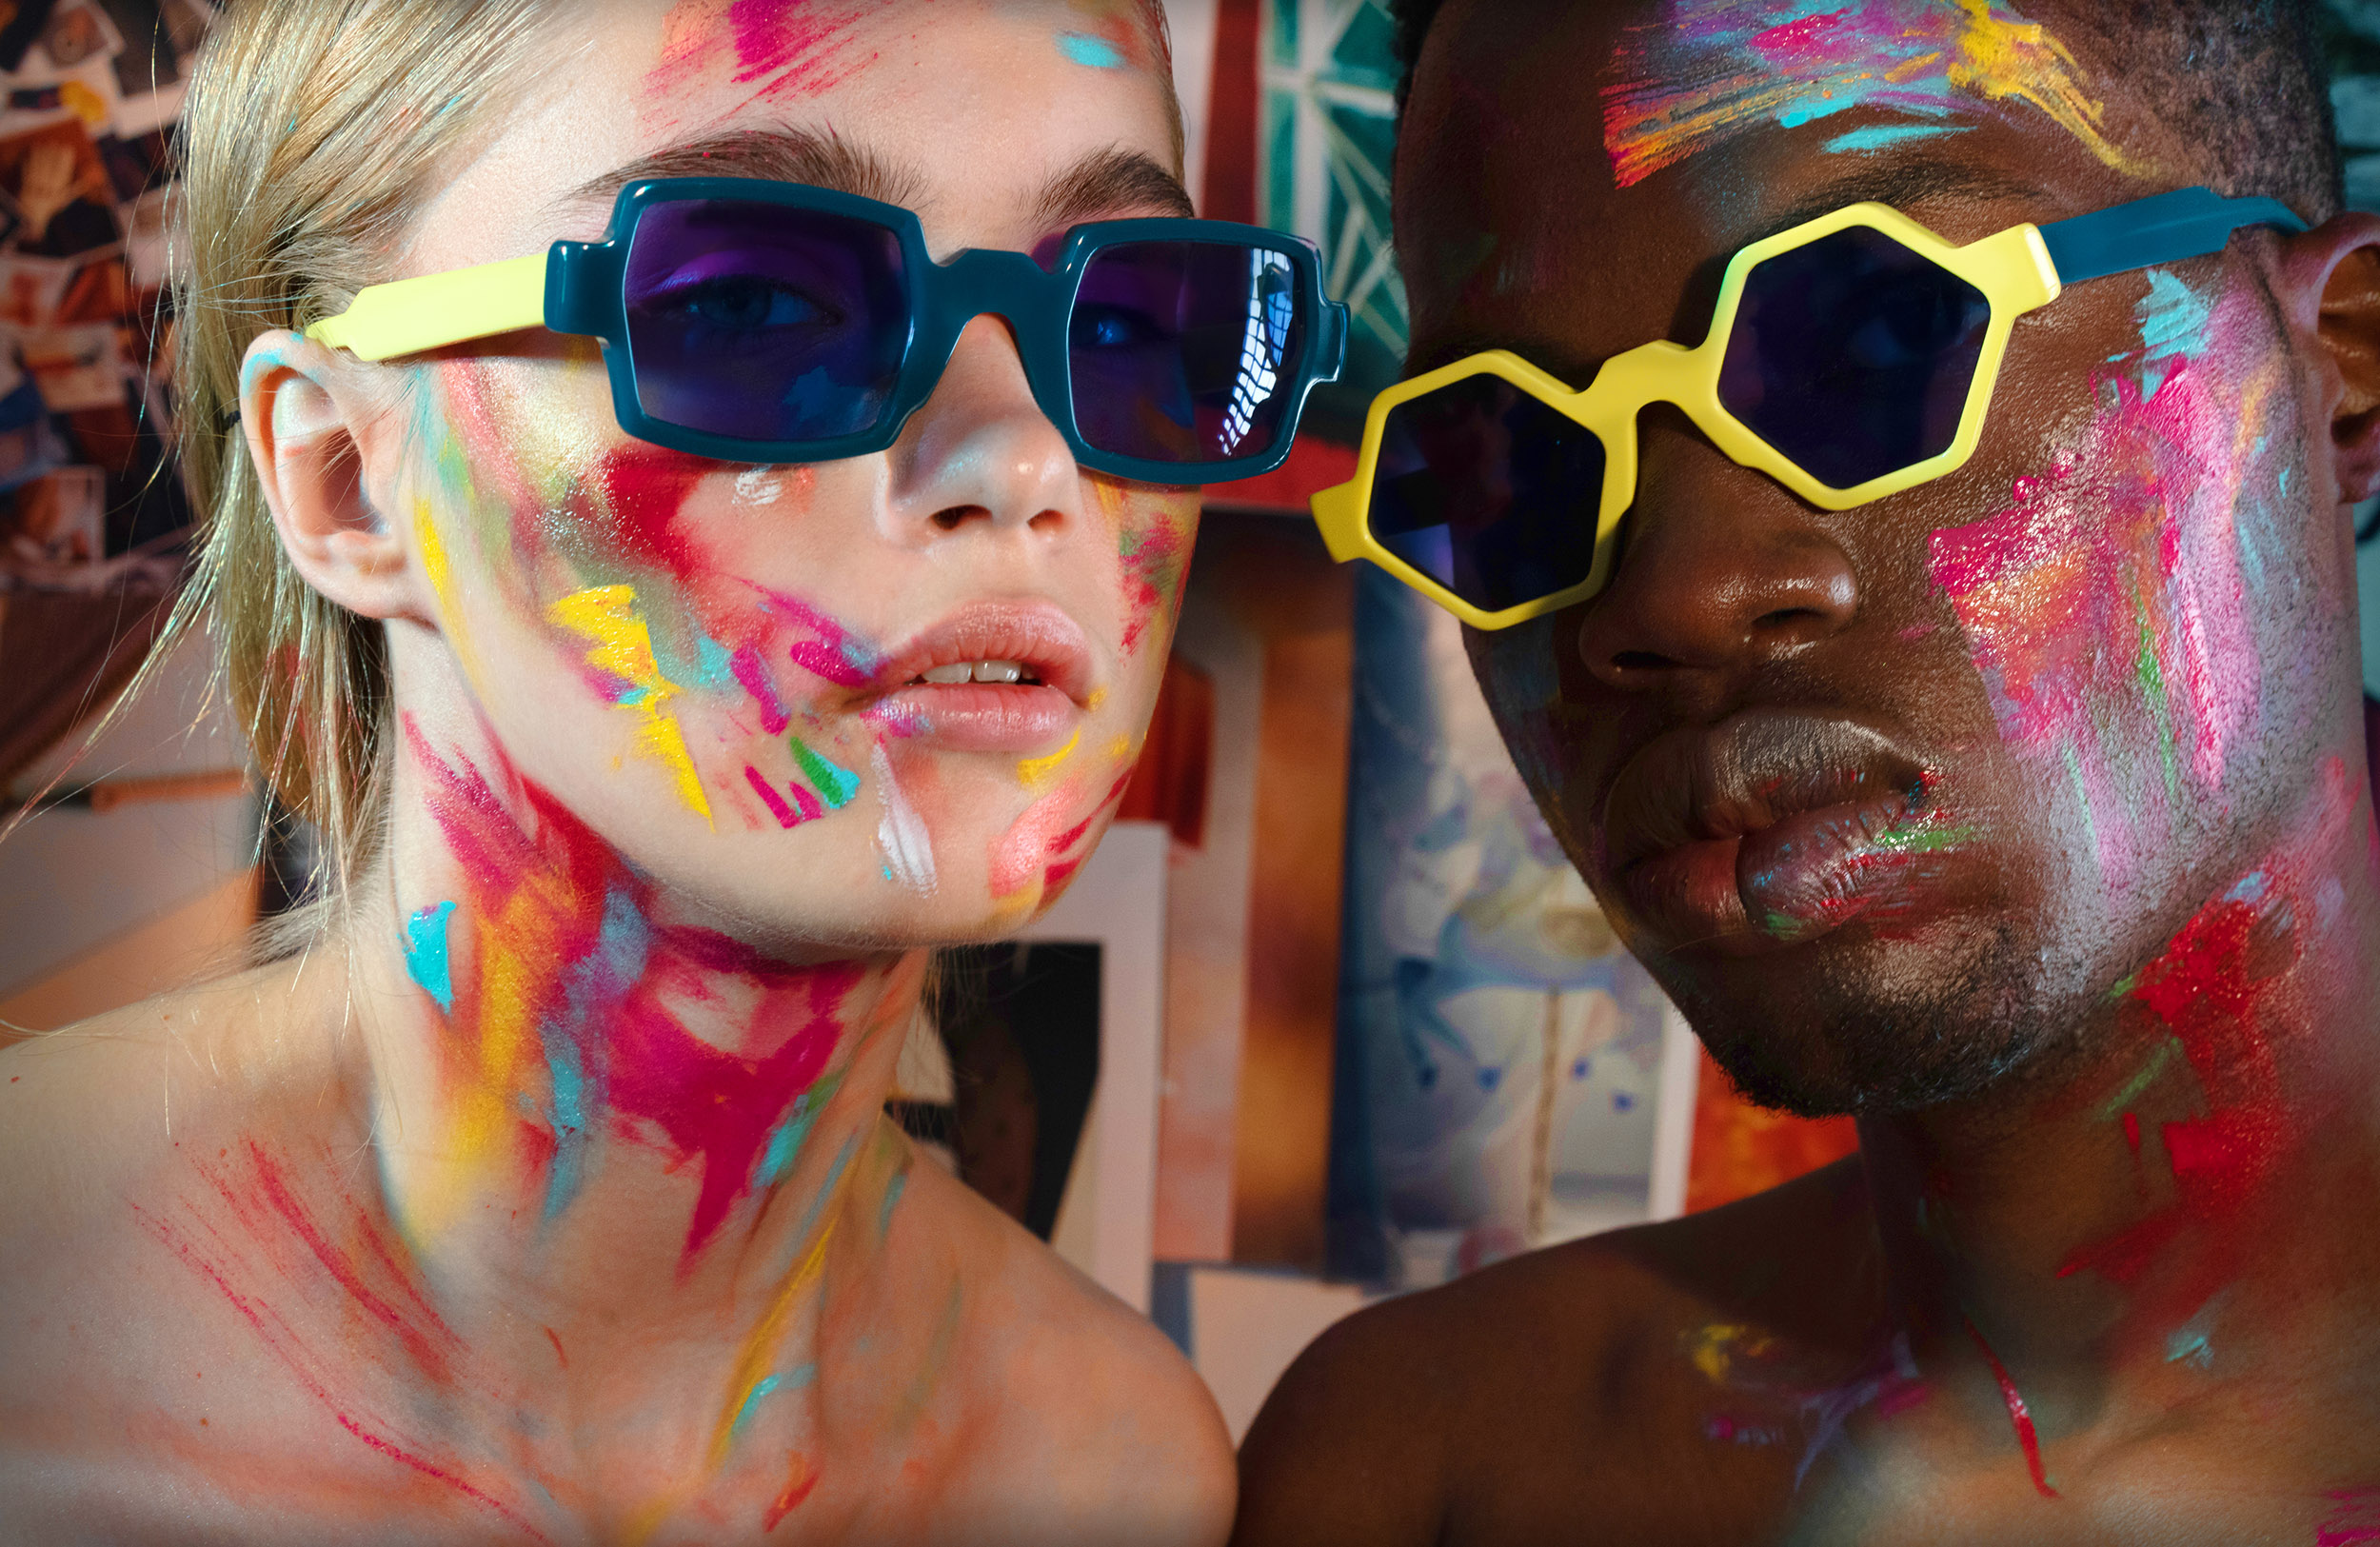 UNSEEN EYEWEAR - VISUAL CULTURES